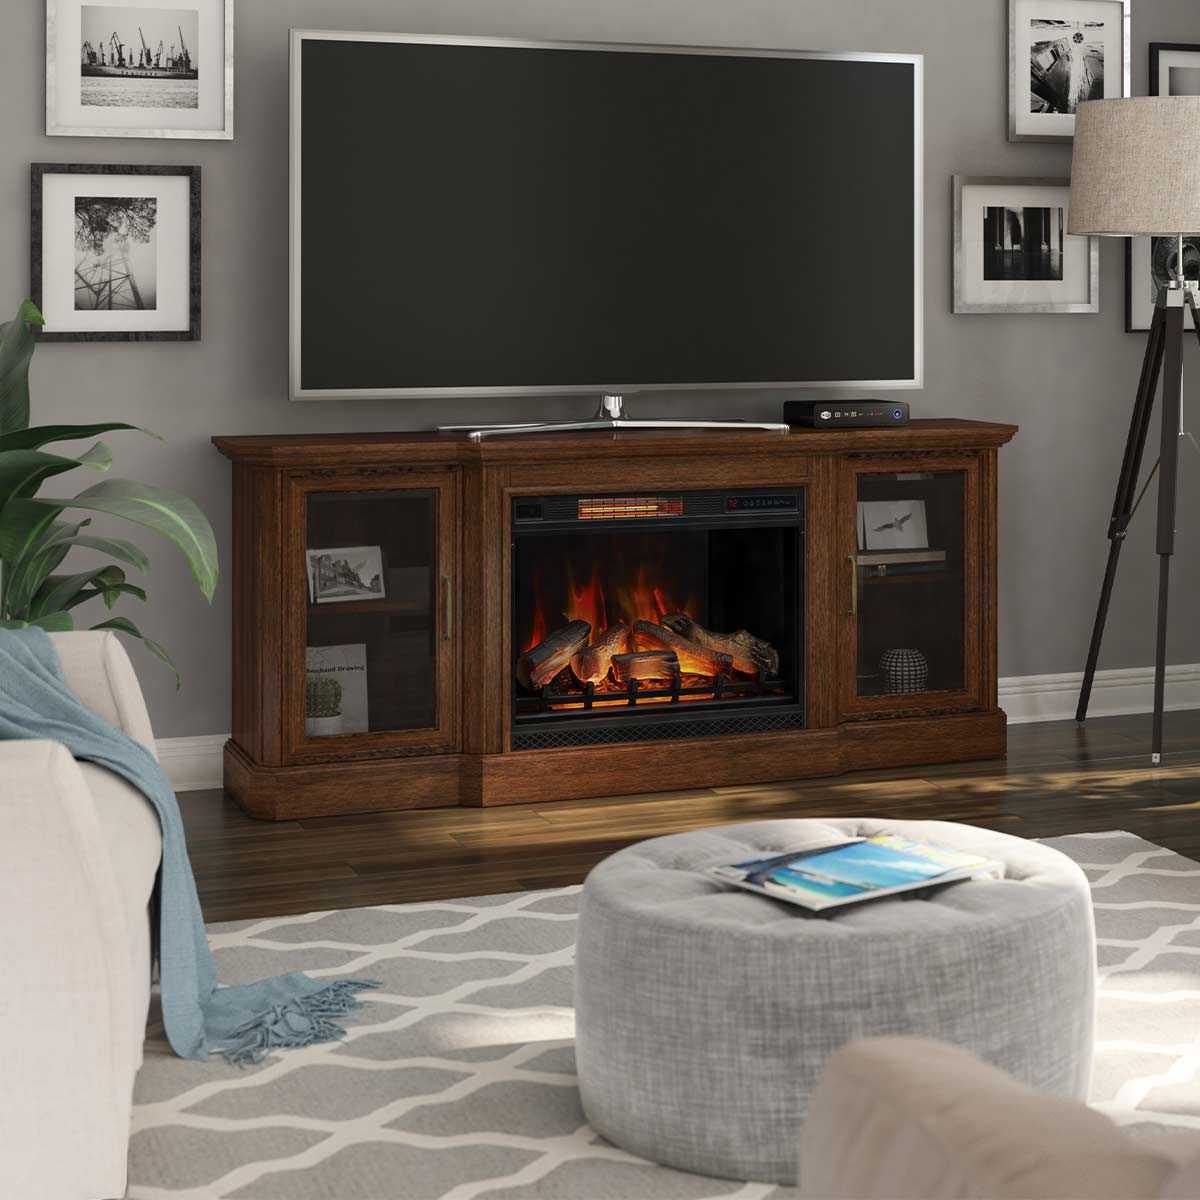 Hershel Tv Stand With Classicflame Electric Fireplace Twin Star Home In 2020 Brown Living Room Fireplace Tv Stand Tv Stand Designs